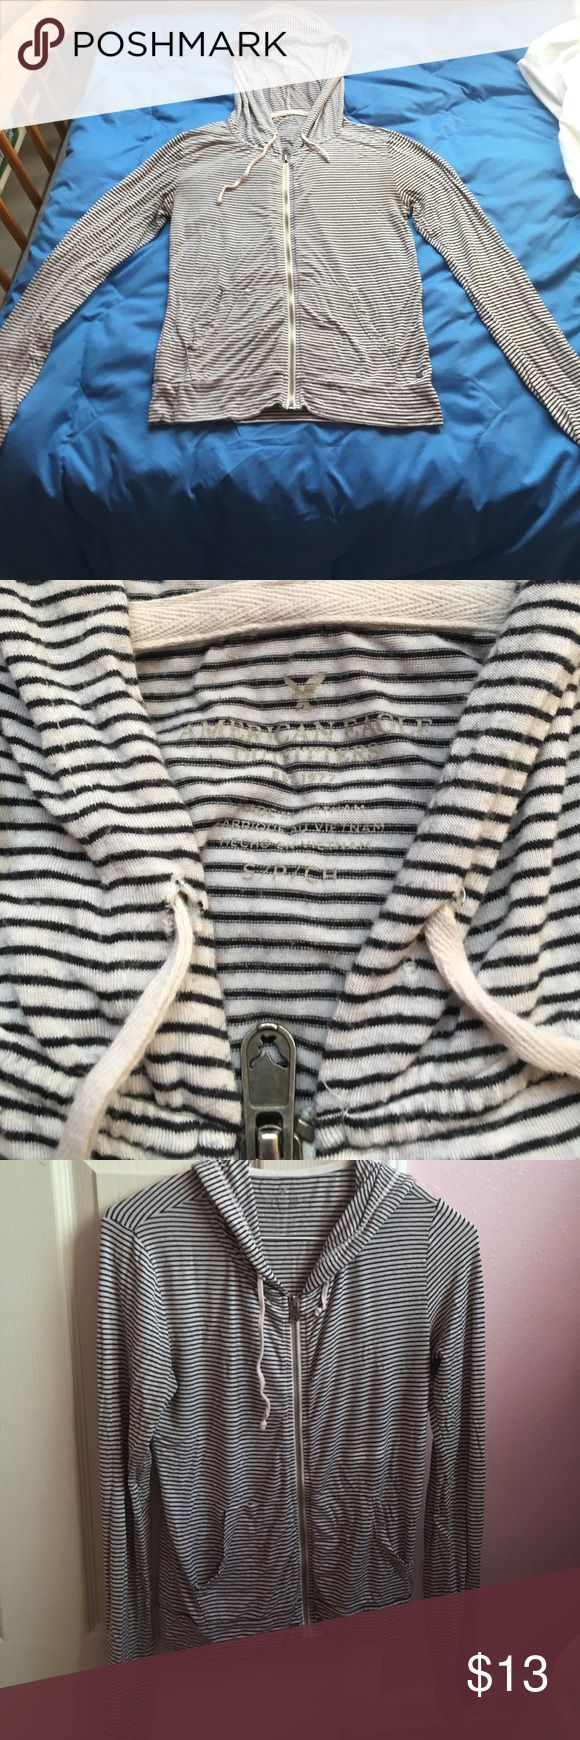 American Eagle Women's Striped Hoodie, SMALL American Eagle light weight black and white striped hoodie. Good condition, size small, comfortable and great for a summer night! American Eagle Outfitters Jackets & Coats